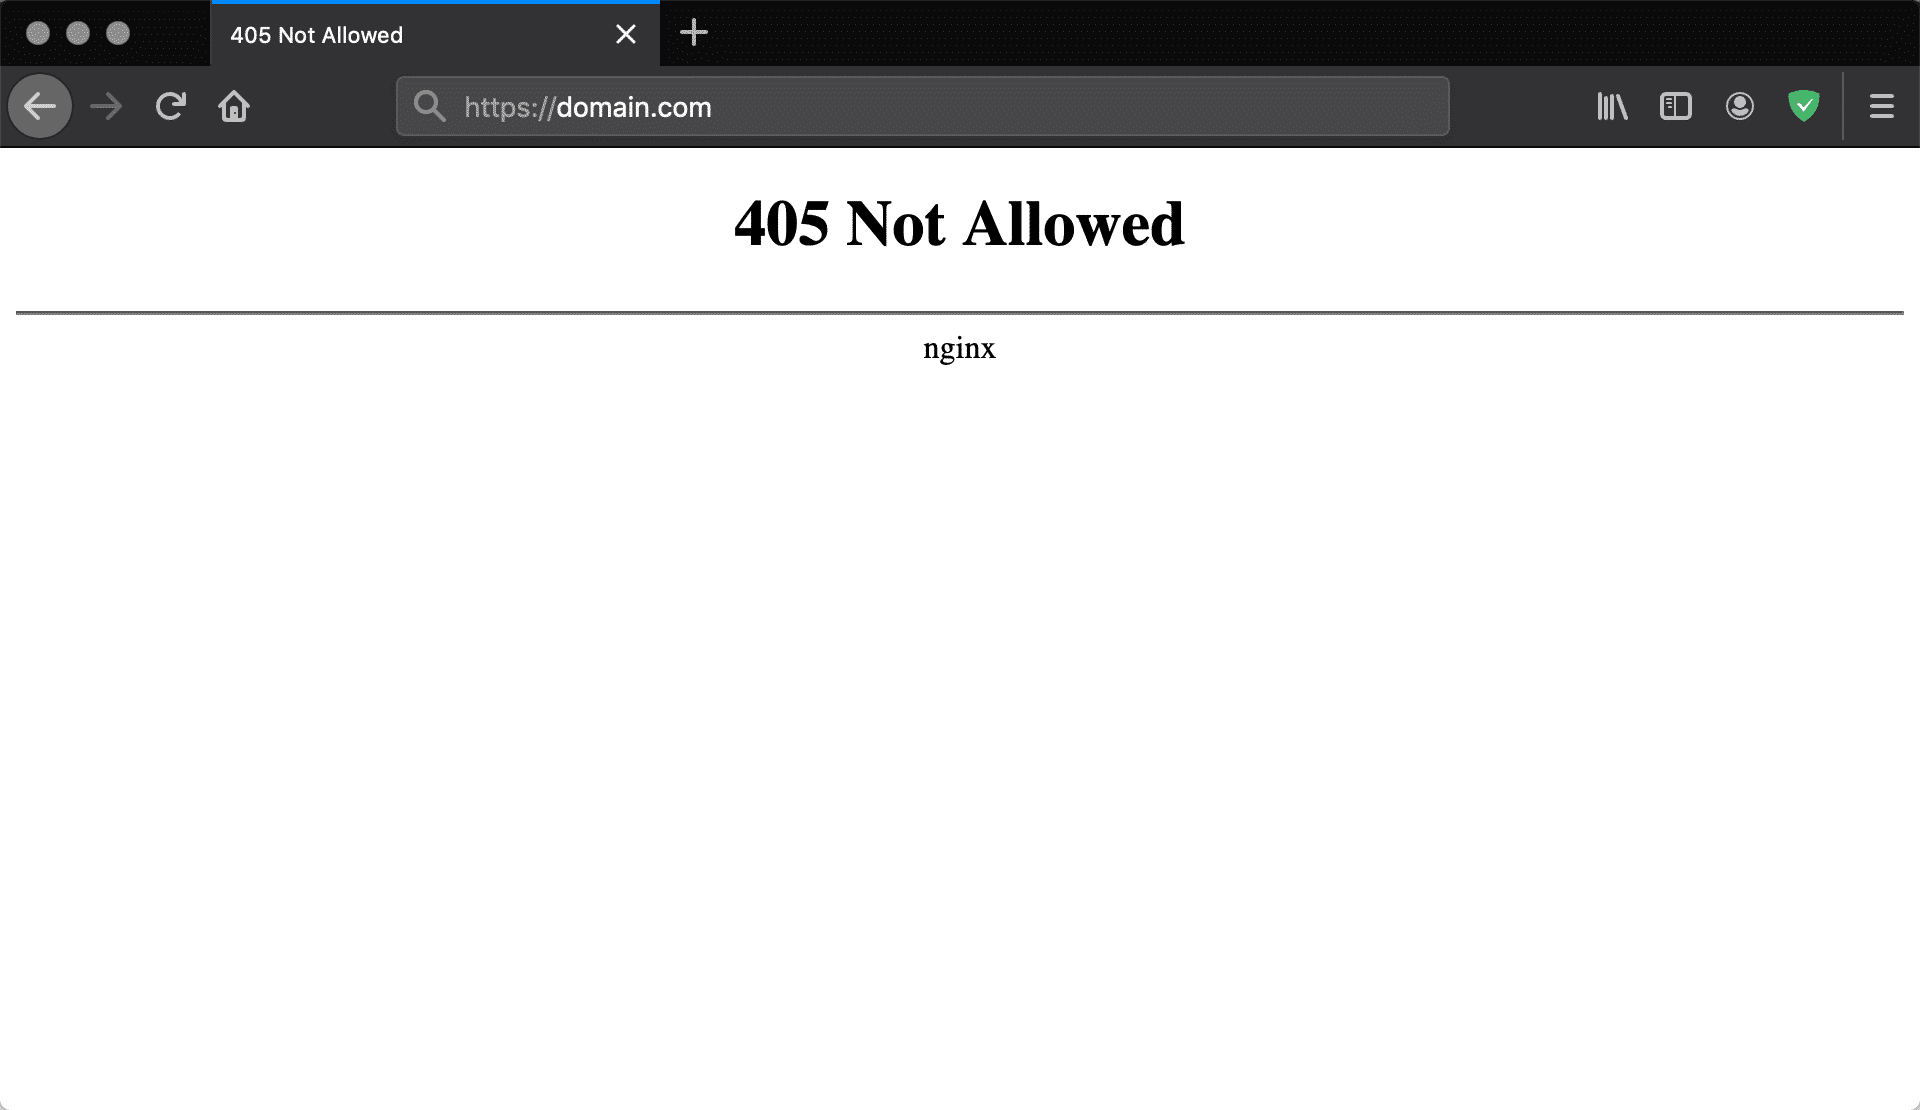 405 Not Allowed foutmelding Nginx in Firefox